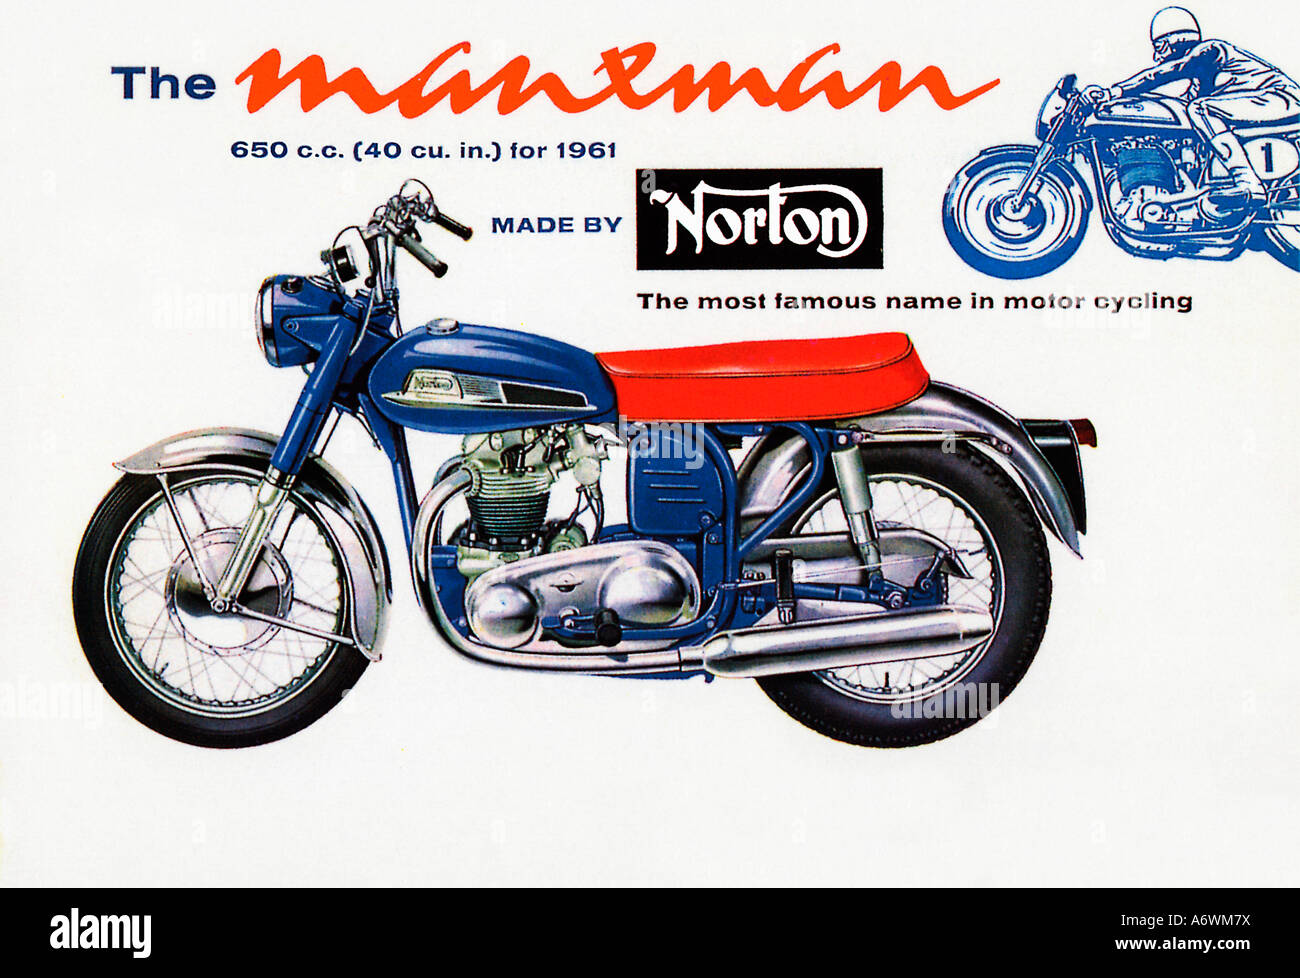 Norton Manxman 1961 Advert for the famous English motor cycle as seen in the Isle of Man TT - Stock Image